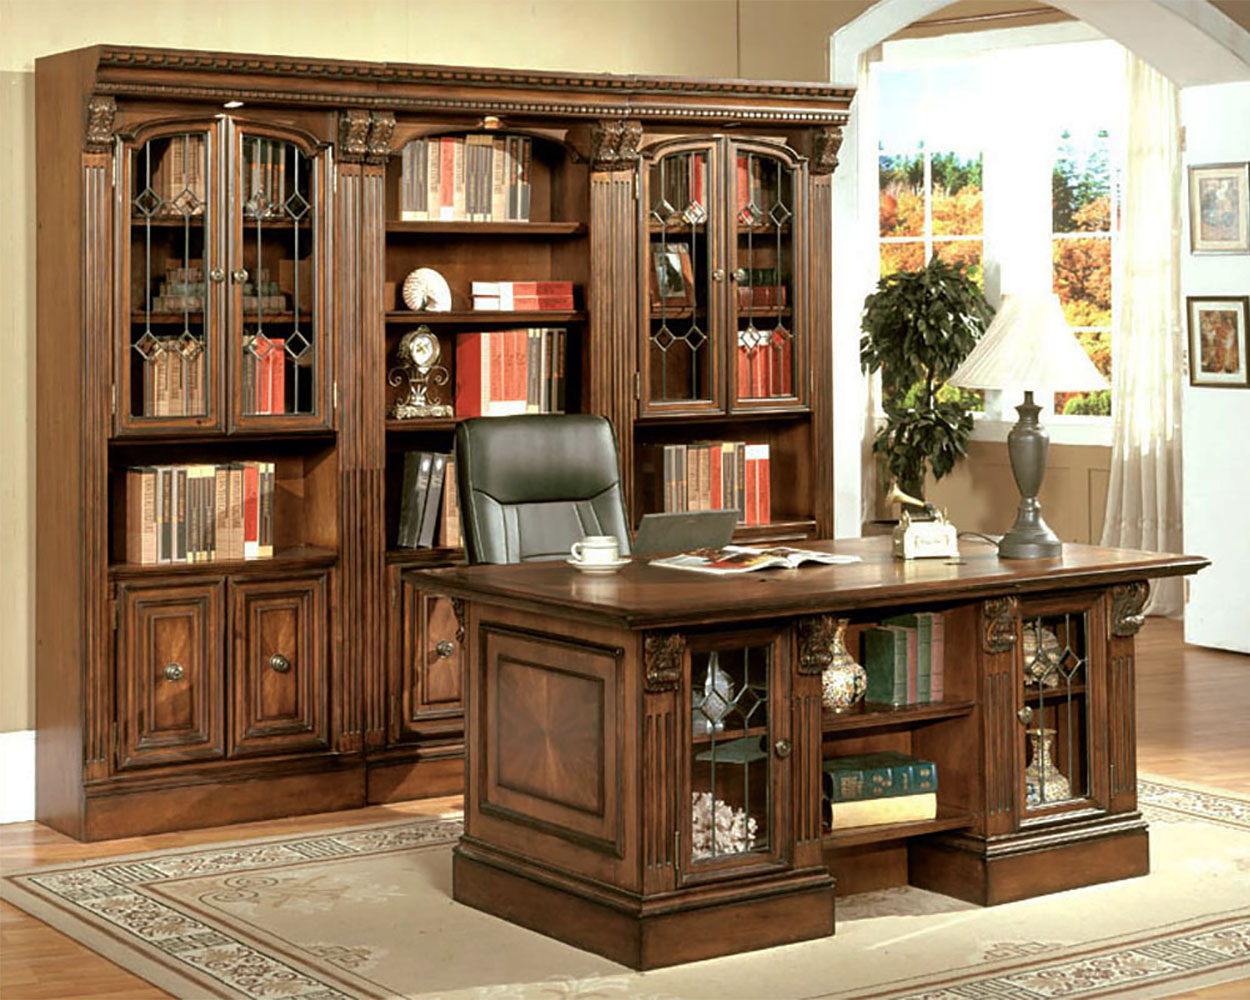 Hom Office Furniture: Parker House Huntington Home Office Furniture PH-HUN-6